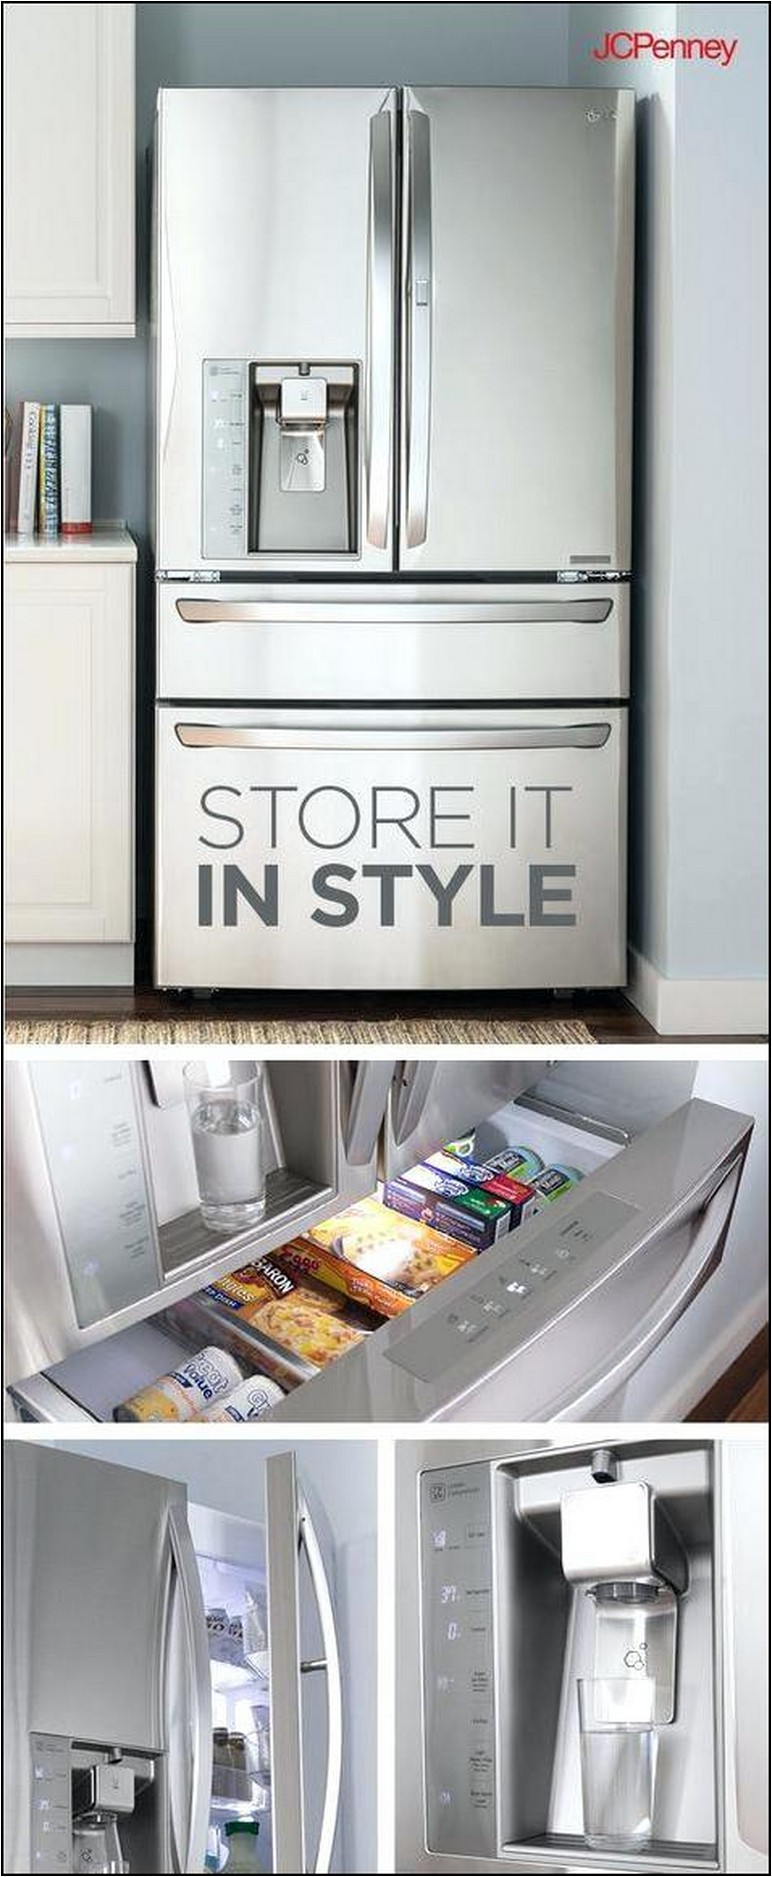 Jcpenney Appliances Refrigerators